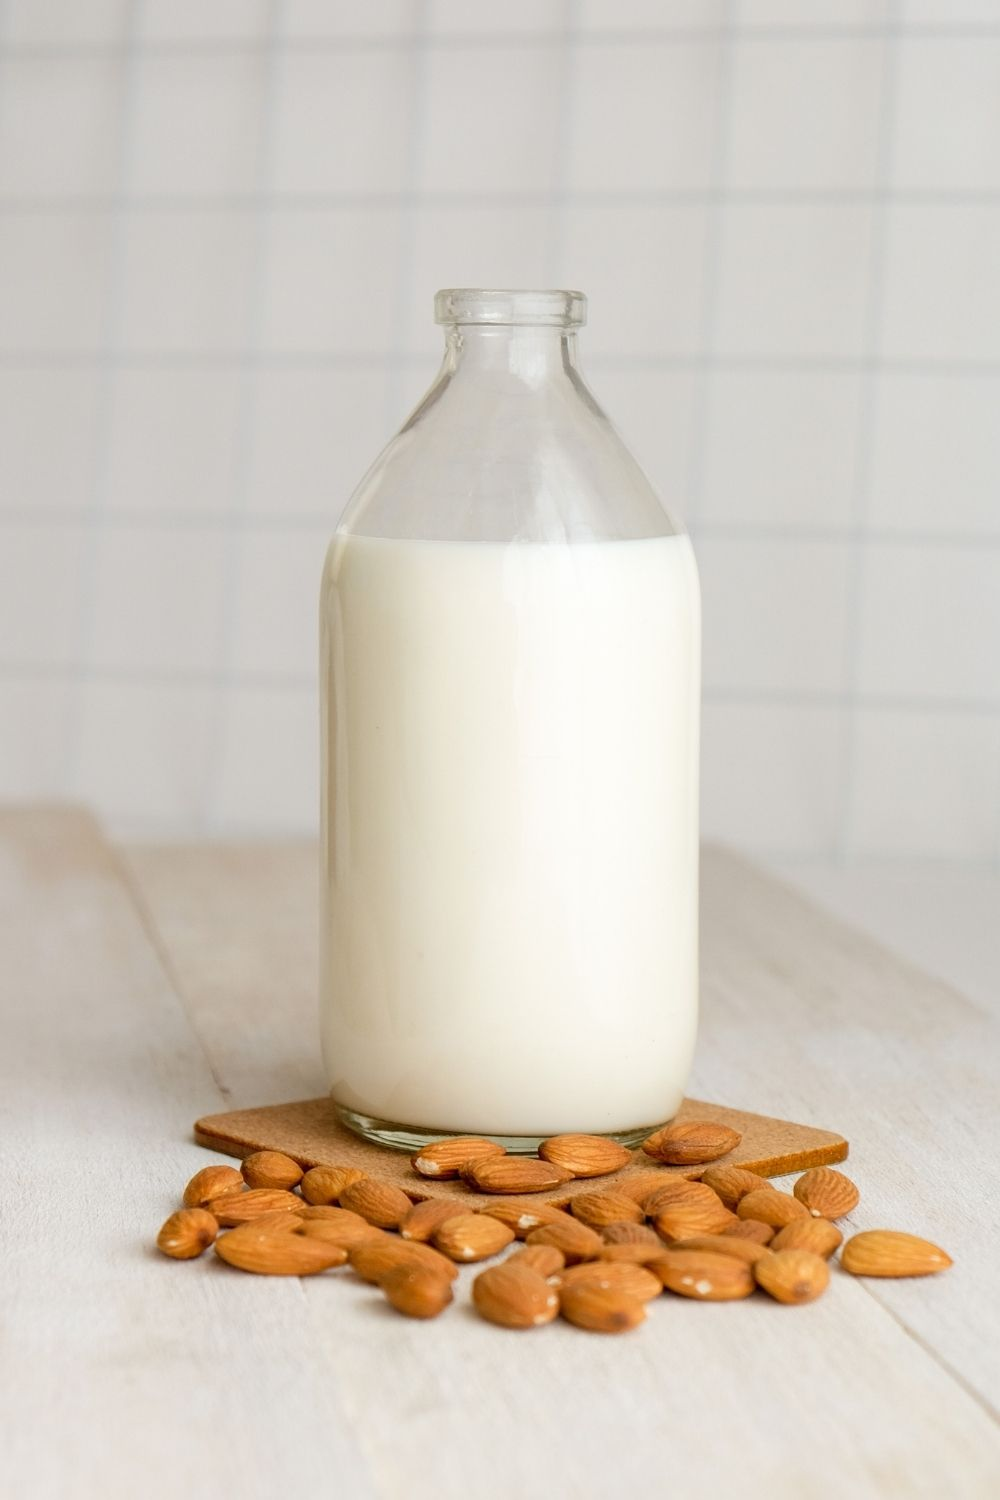 Glass milk jar with almonds in front on top of a table